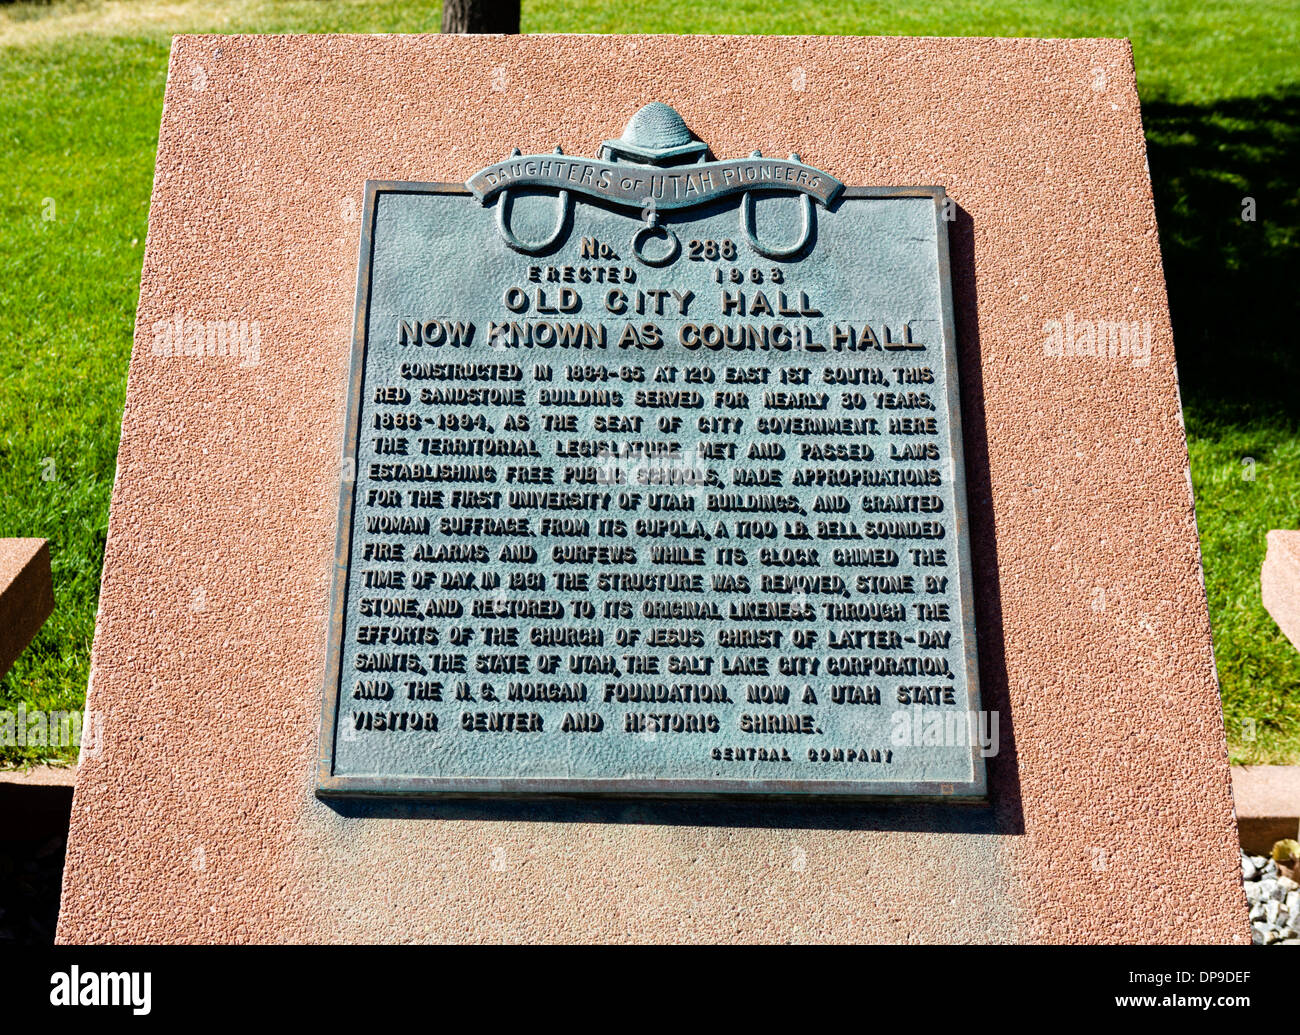 Plaque outside Council Hall (formerly the Old City Hall), Salt Lake City, Utah, USA - Stock Image